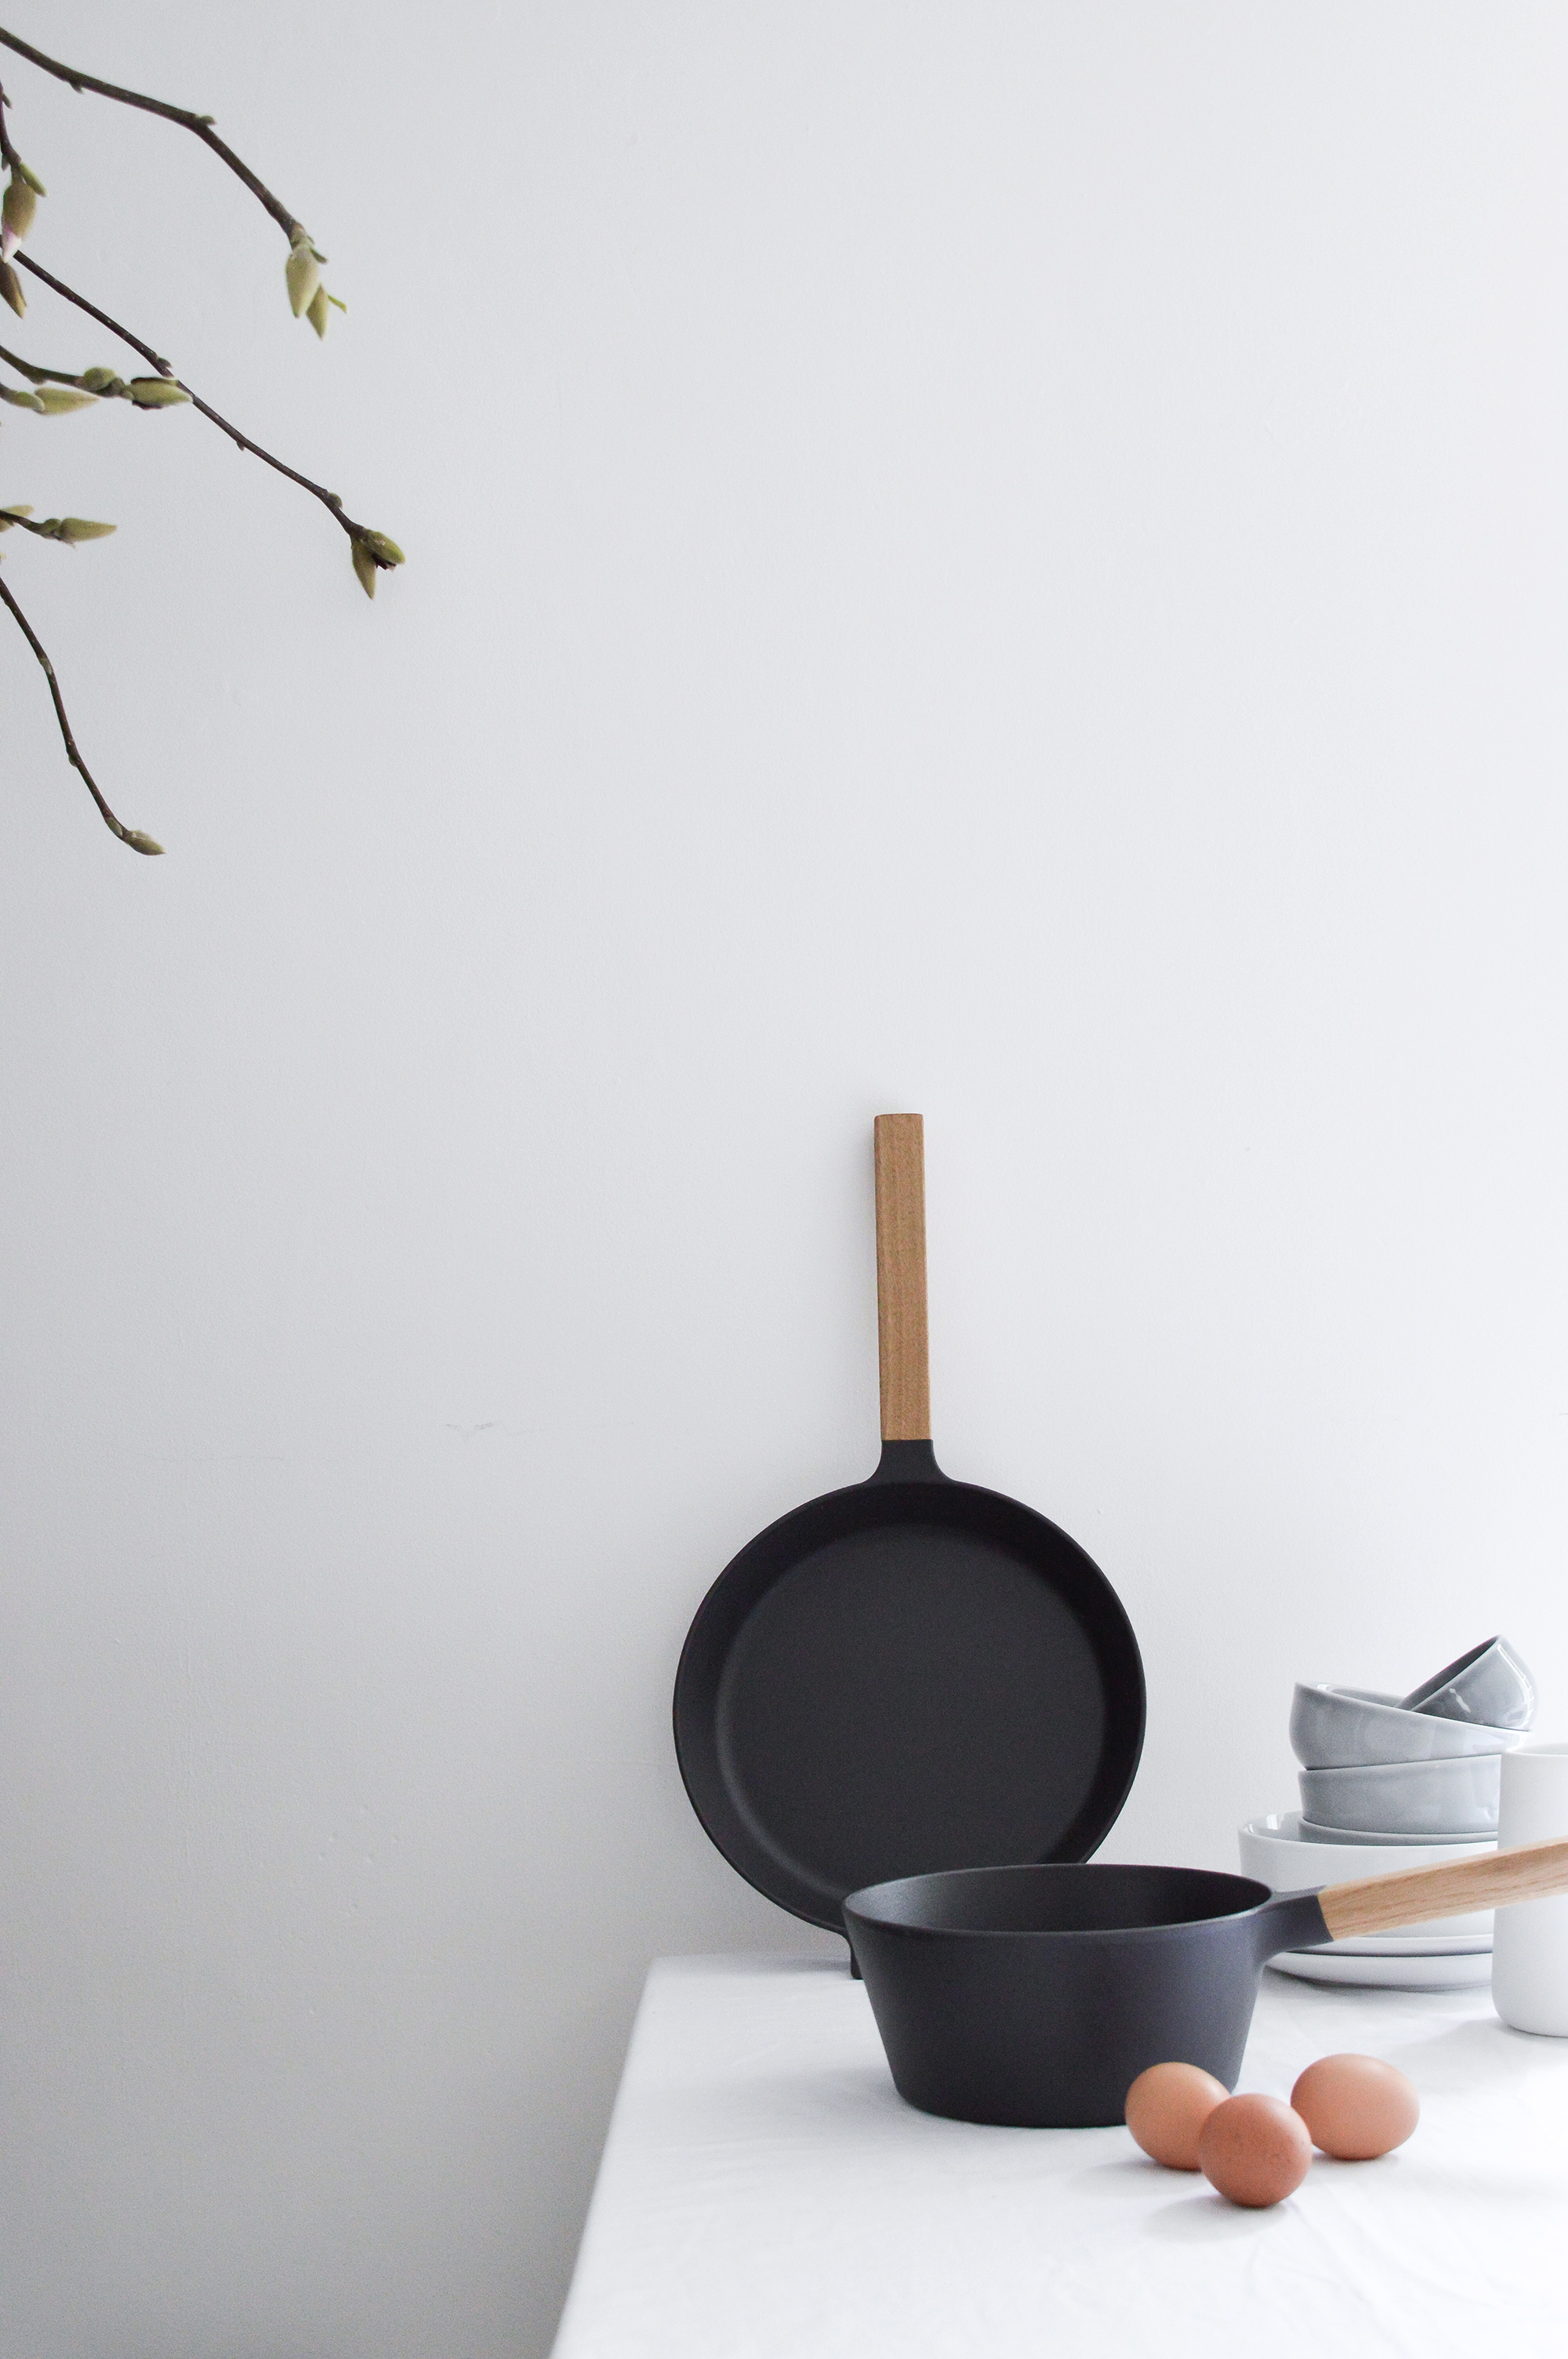 Springtime hygge with Morsø, Danish cookware, simple kitchen styling, scandinavian